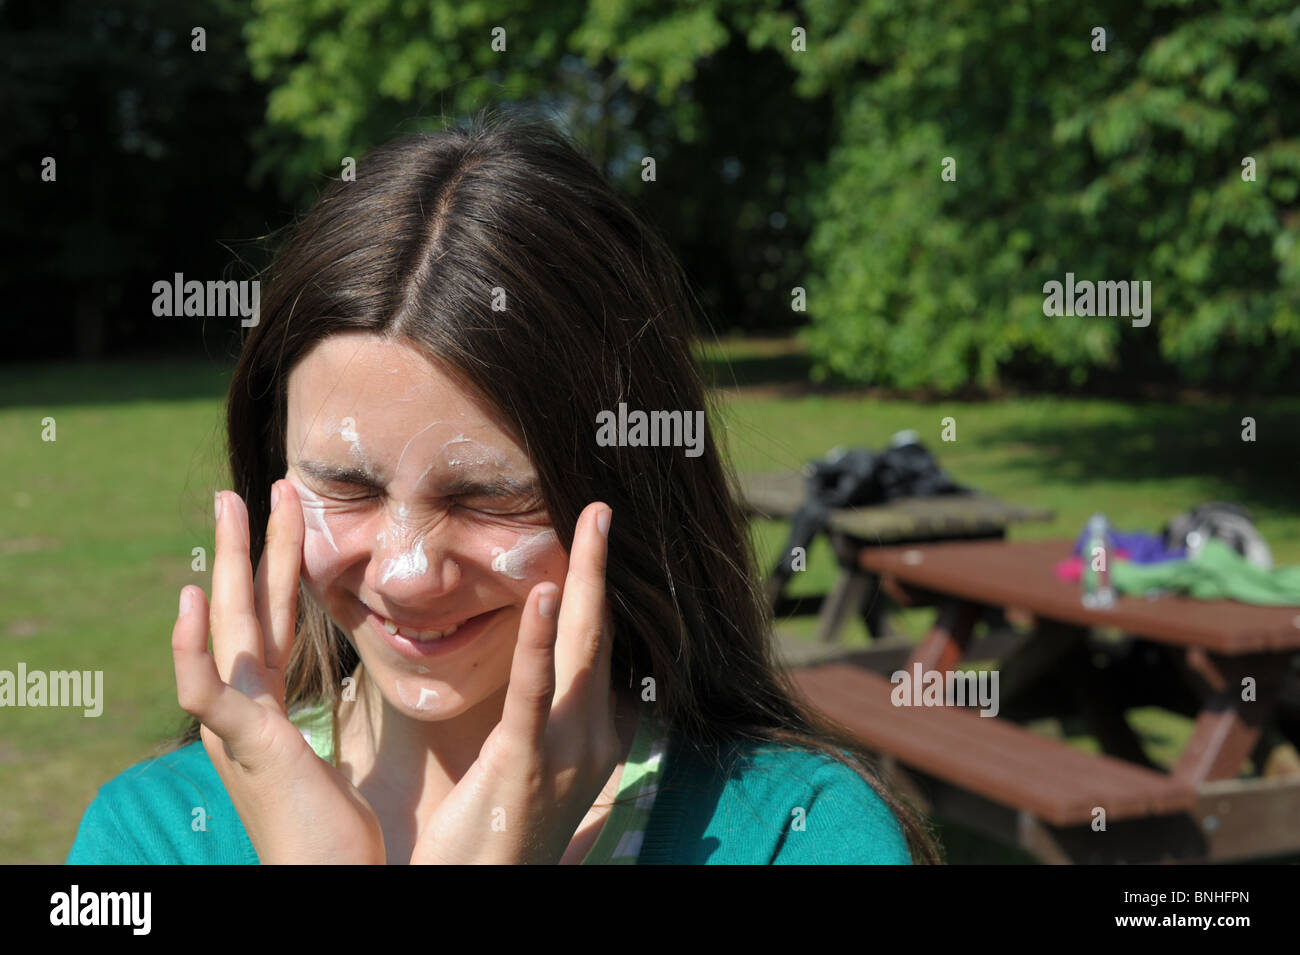 Girl unhappy about putting suncream on her face in a park on  a hot sunny day - Stock Image